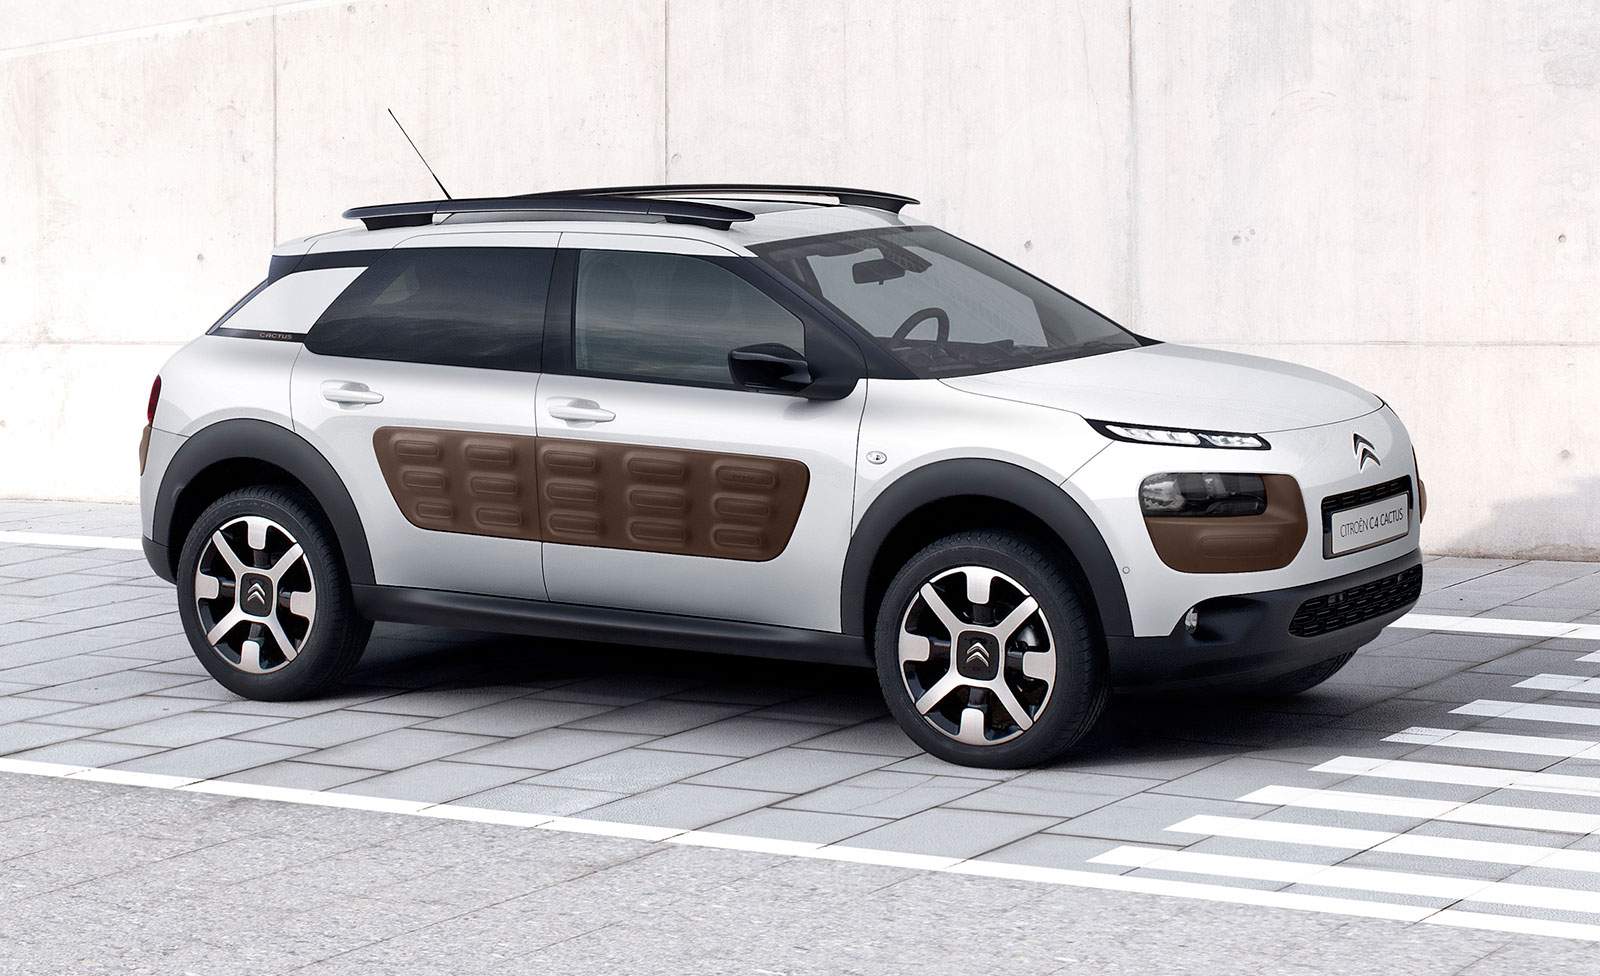 citroen c4 cactus car body design. Black Bedroom Furniture Sets. Home Design Ideas